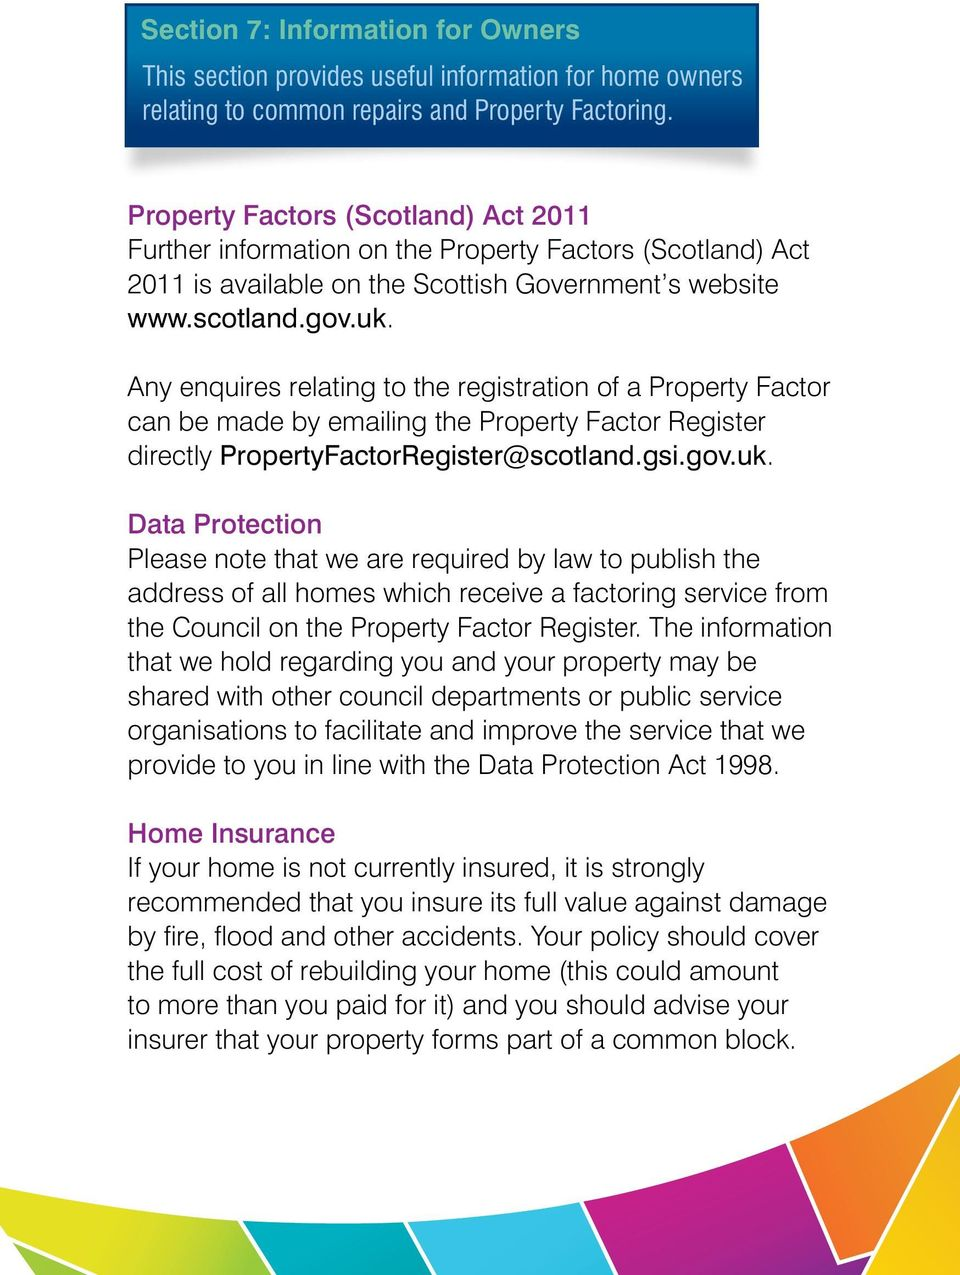 Any enquires relating to the registration of a Property Factor can be made by emailing the Property Factor Register directly PropertyFactorRegister@scotland.gsi.gov.uk.